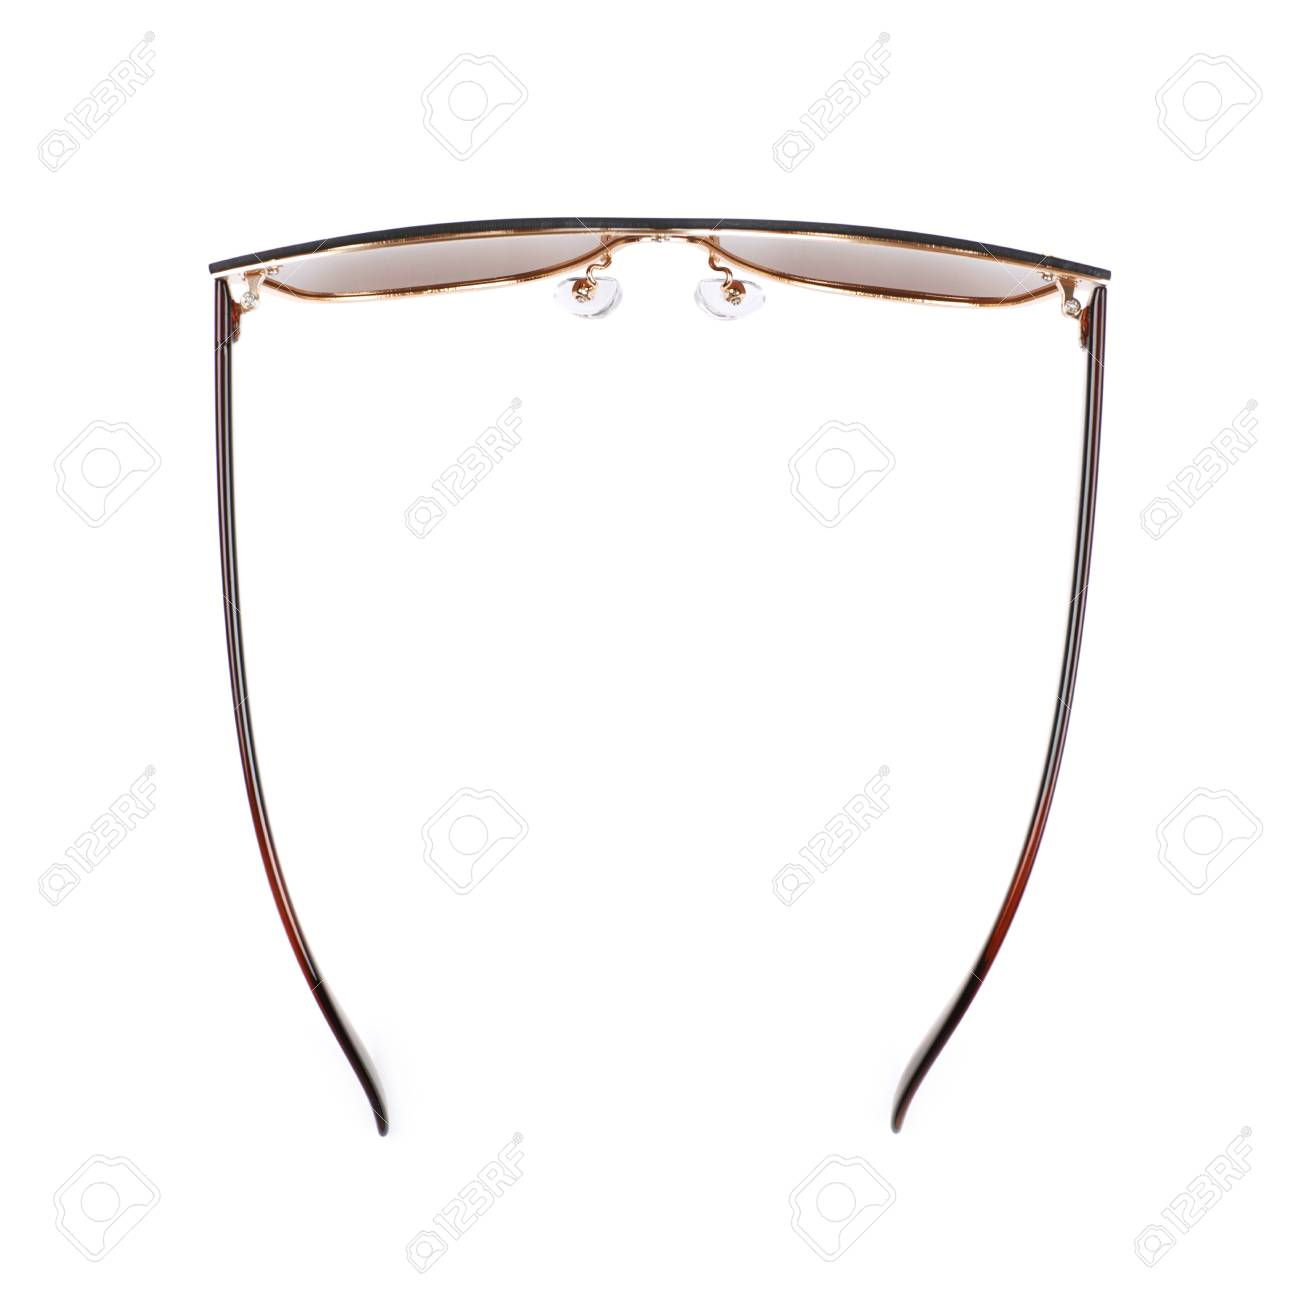 26150365e99 Pair of brown shade sunglasses isolated over the white background Stock  Photo - 60707508